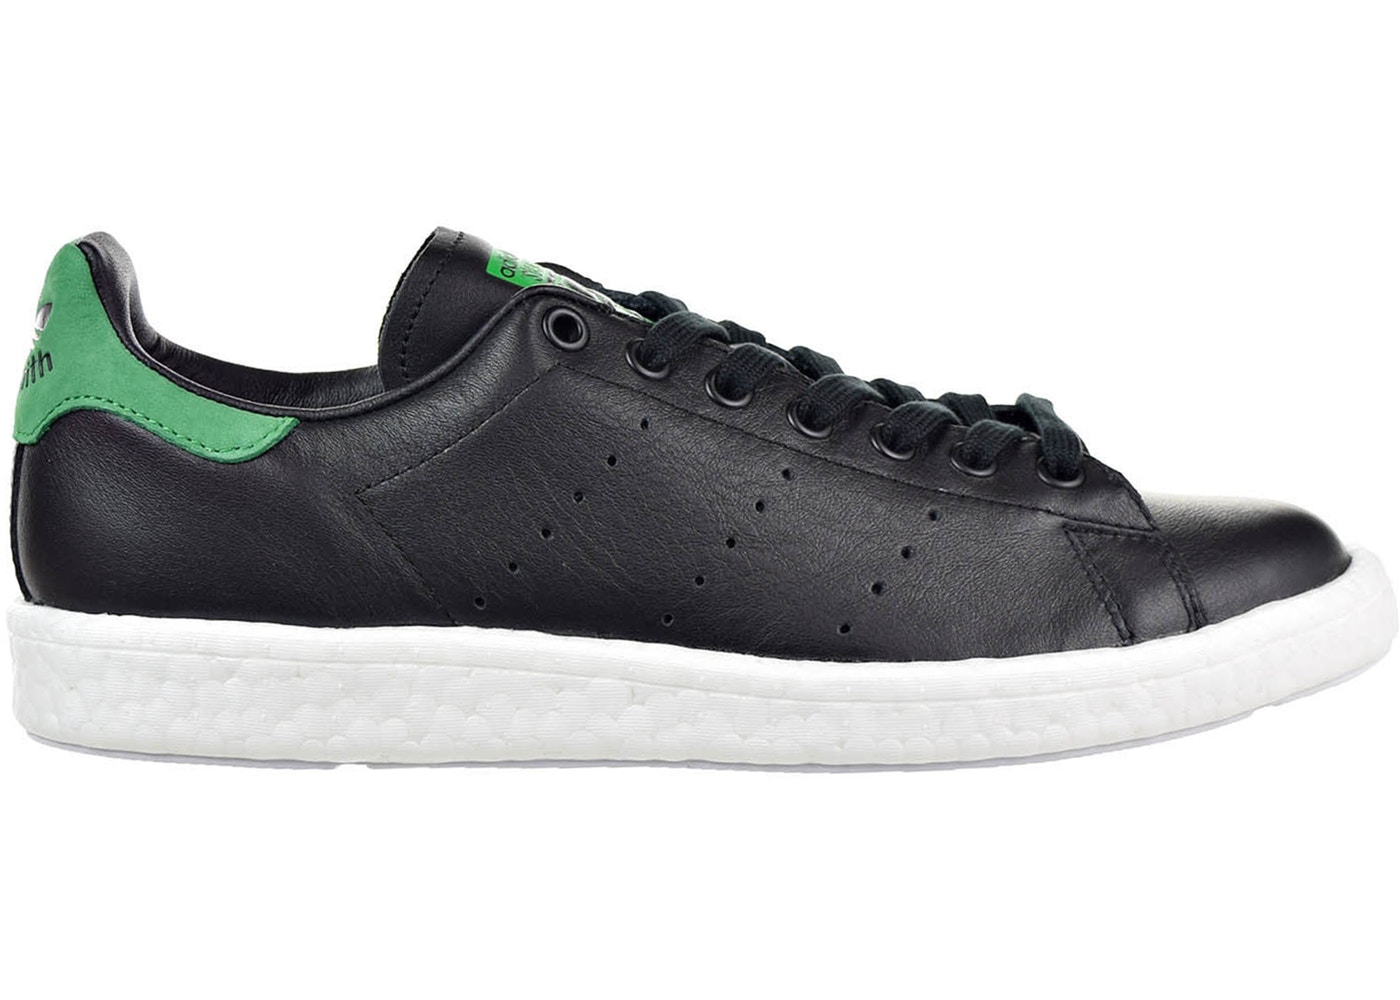 a5ee691f159 adidas Stan Smith Boost Black Green - BB0009